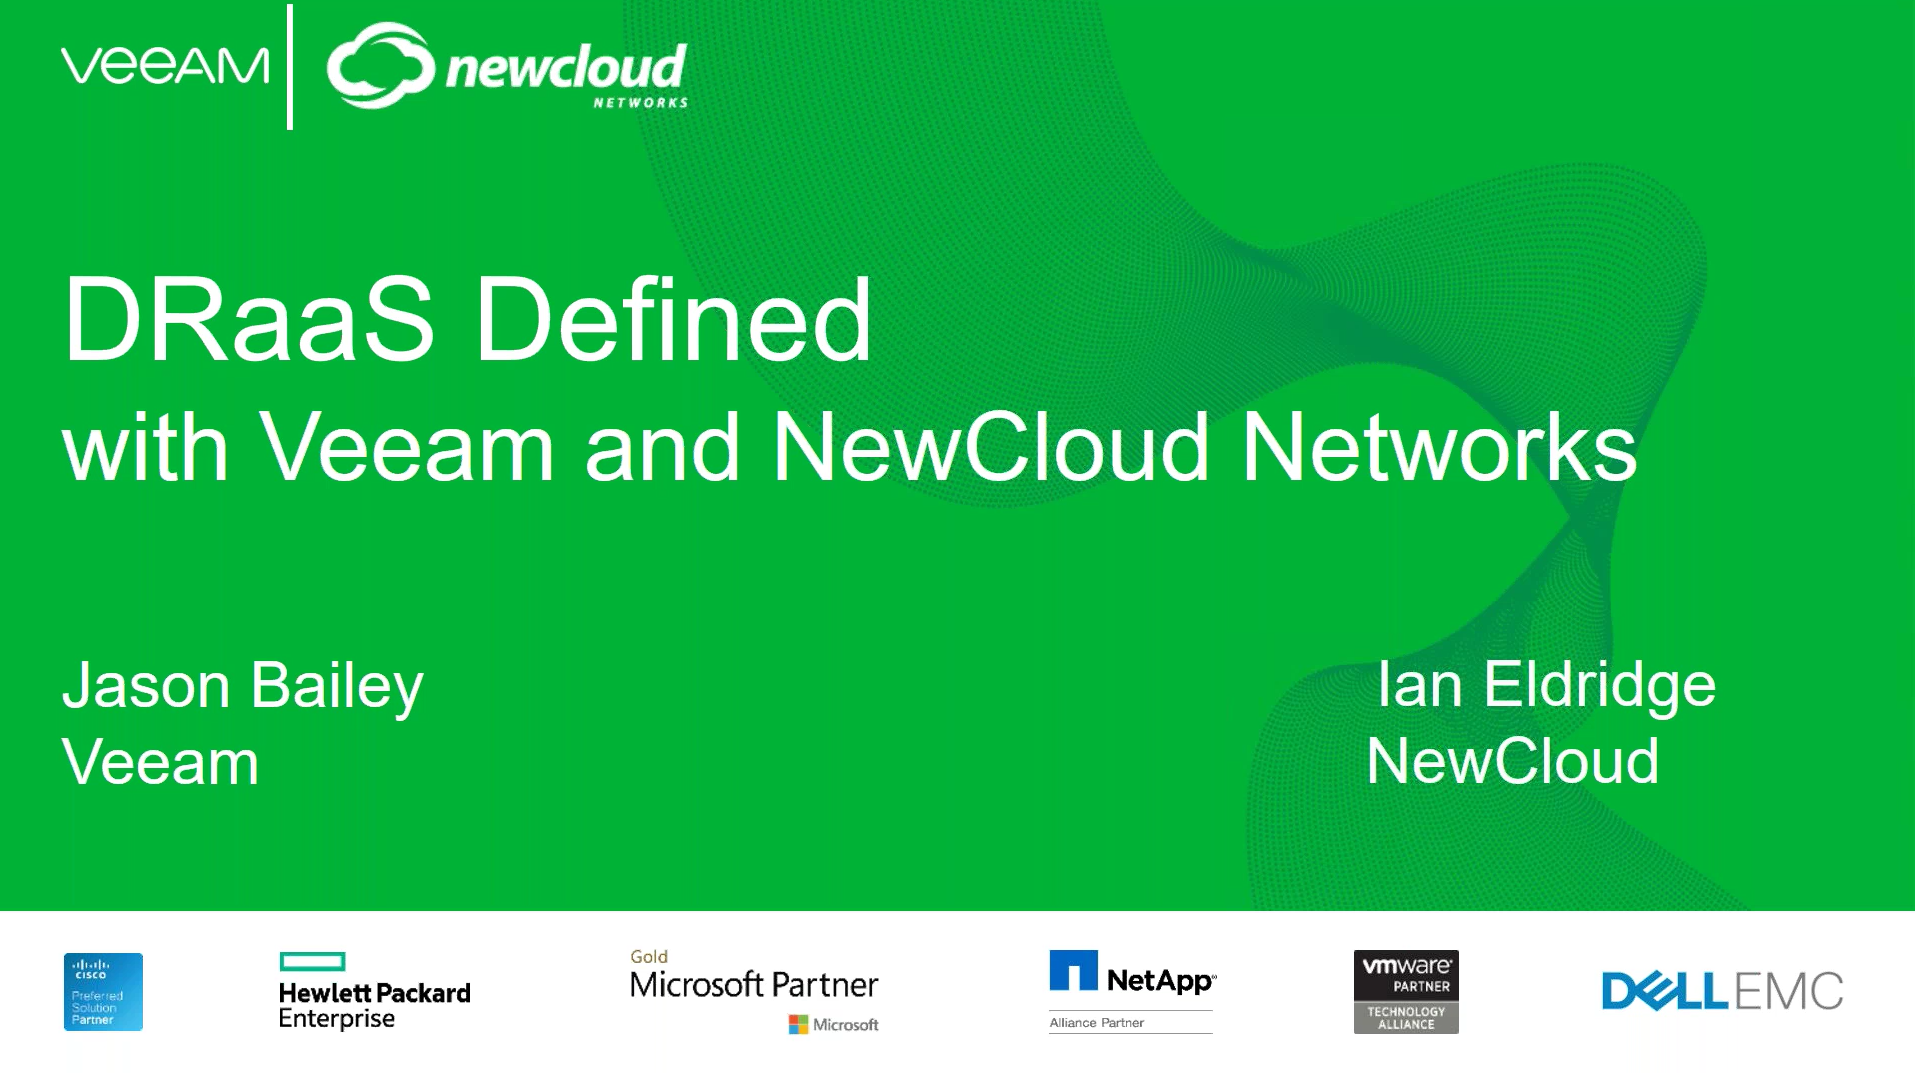 Learn the future of DRaaS with Veeam & NewCloud